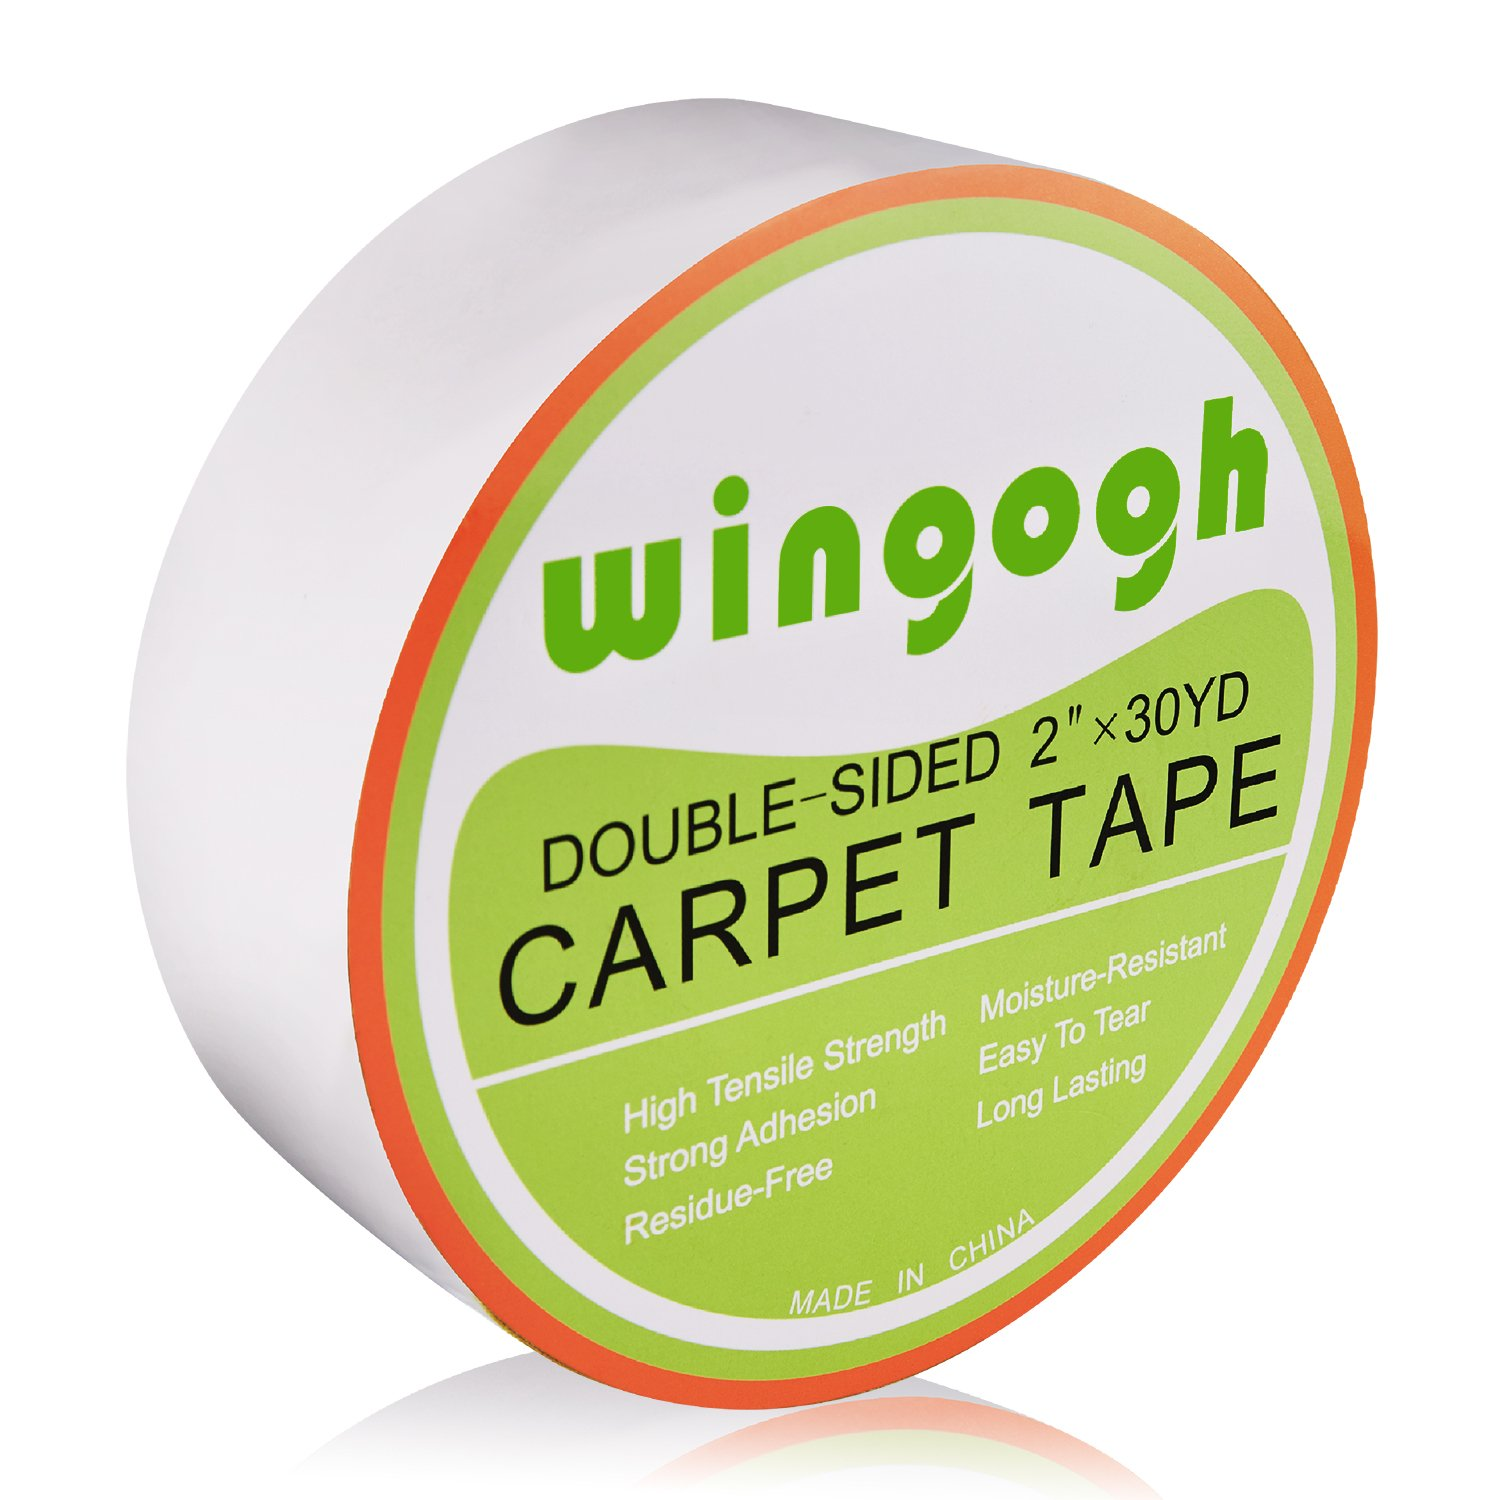 Double Sided Carpet Tape - Wingogh Multi-Purpose Double Sided Duct Tape Removable Anti Slip Non Skid Rug Pad Carpet Underlayment Adhesive Indoor and Outdoor Better than Rug Gripper, 2-Inch x 30 Yards